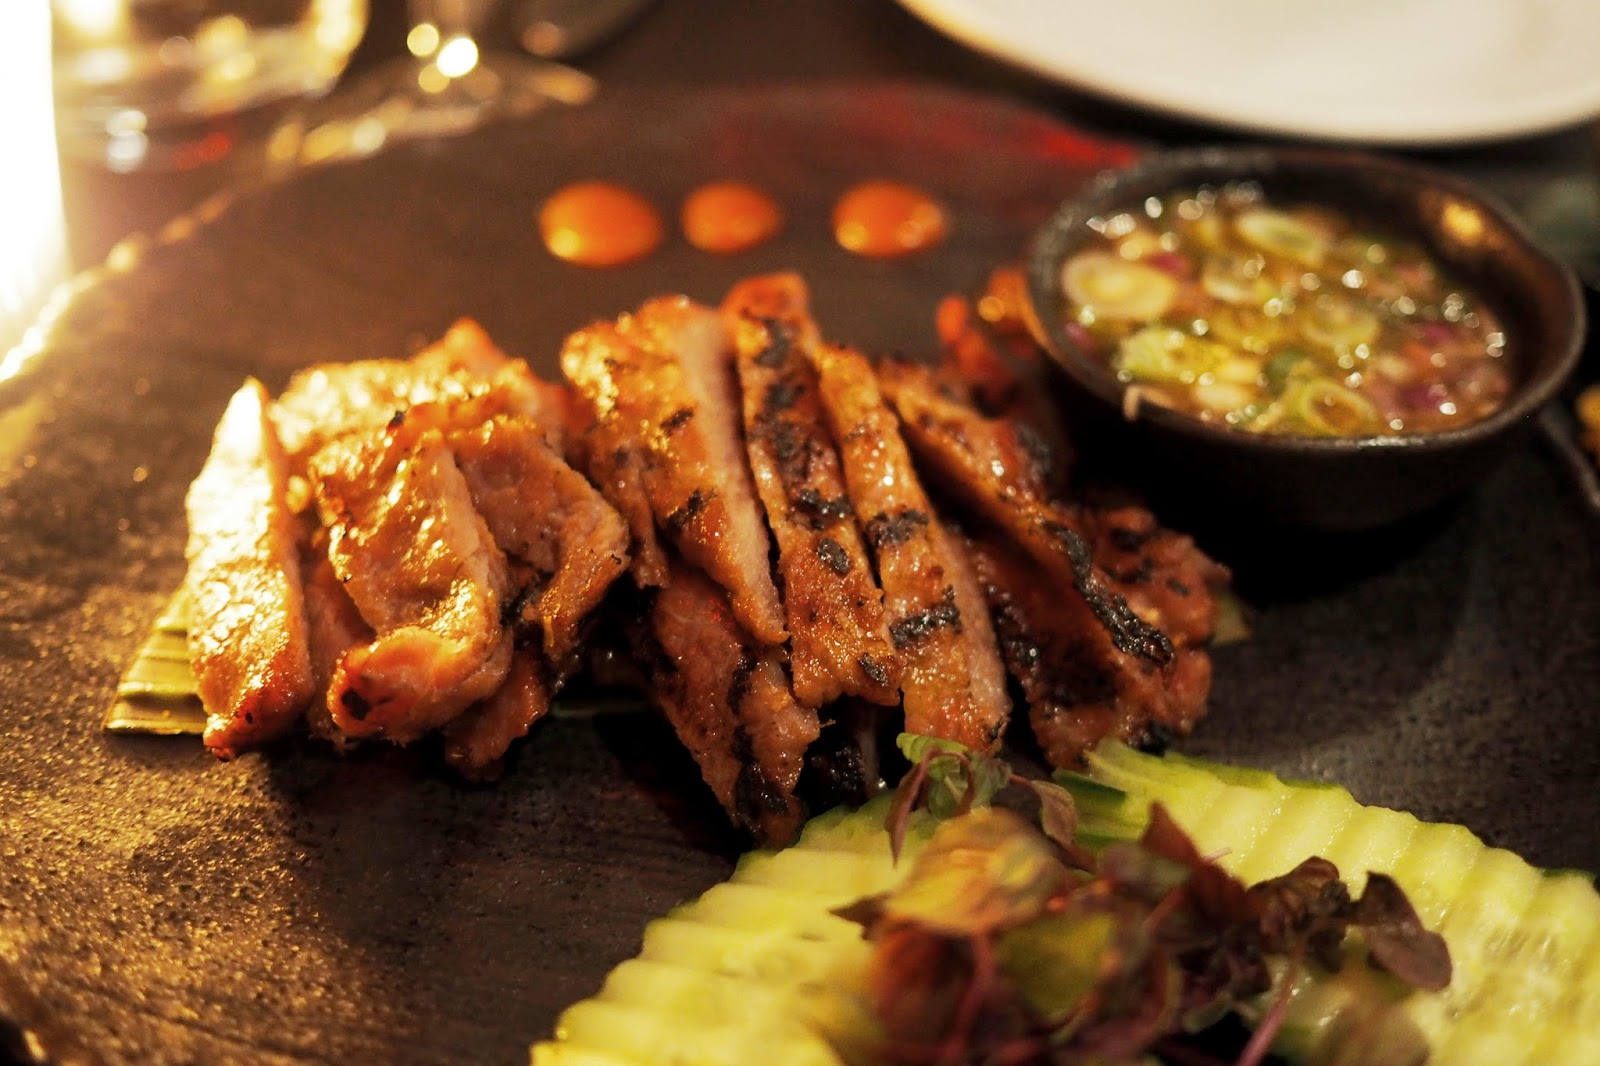 slices of barbecued pork served with cucumber